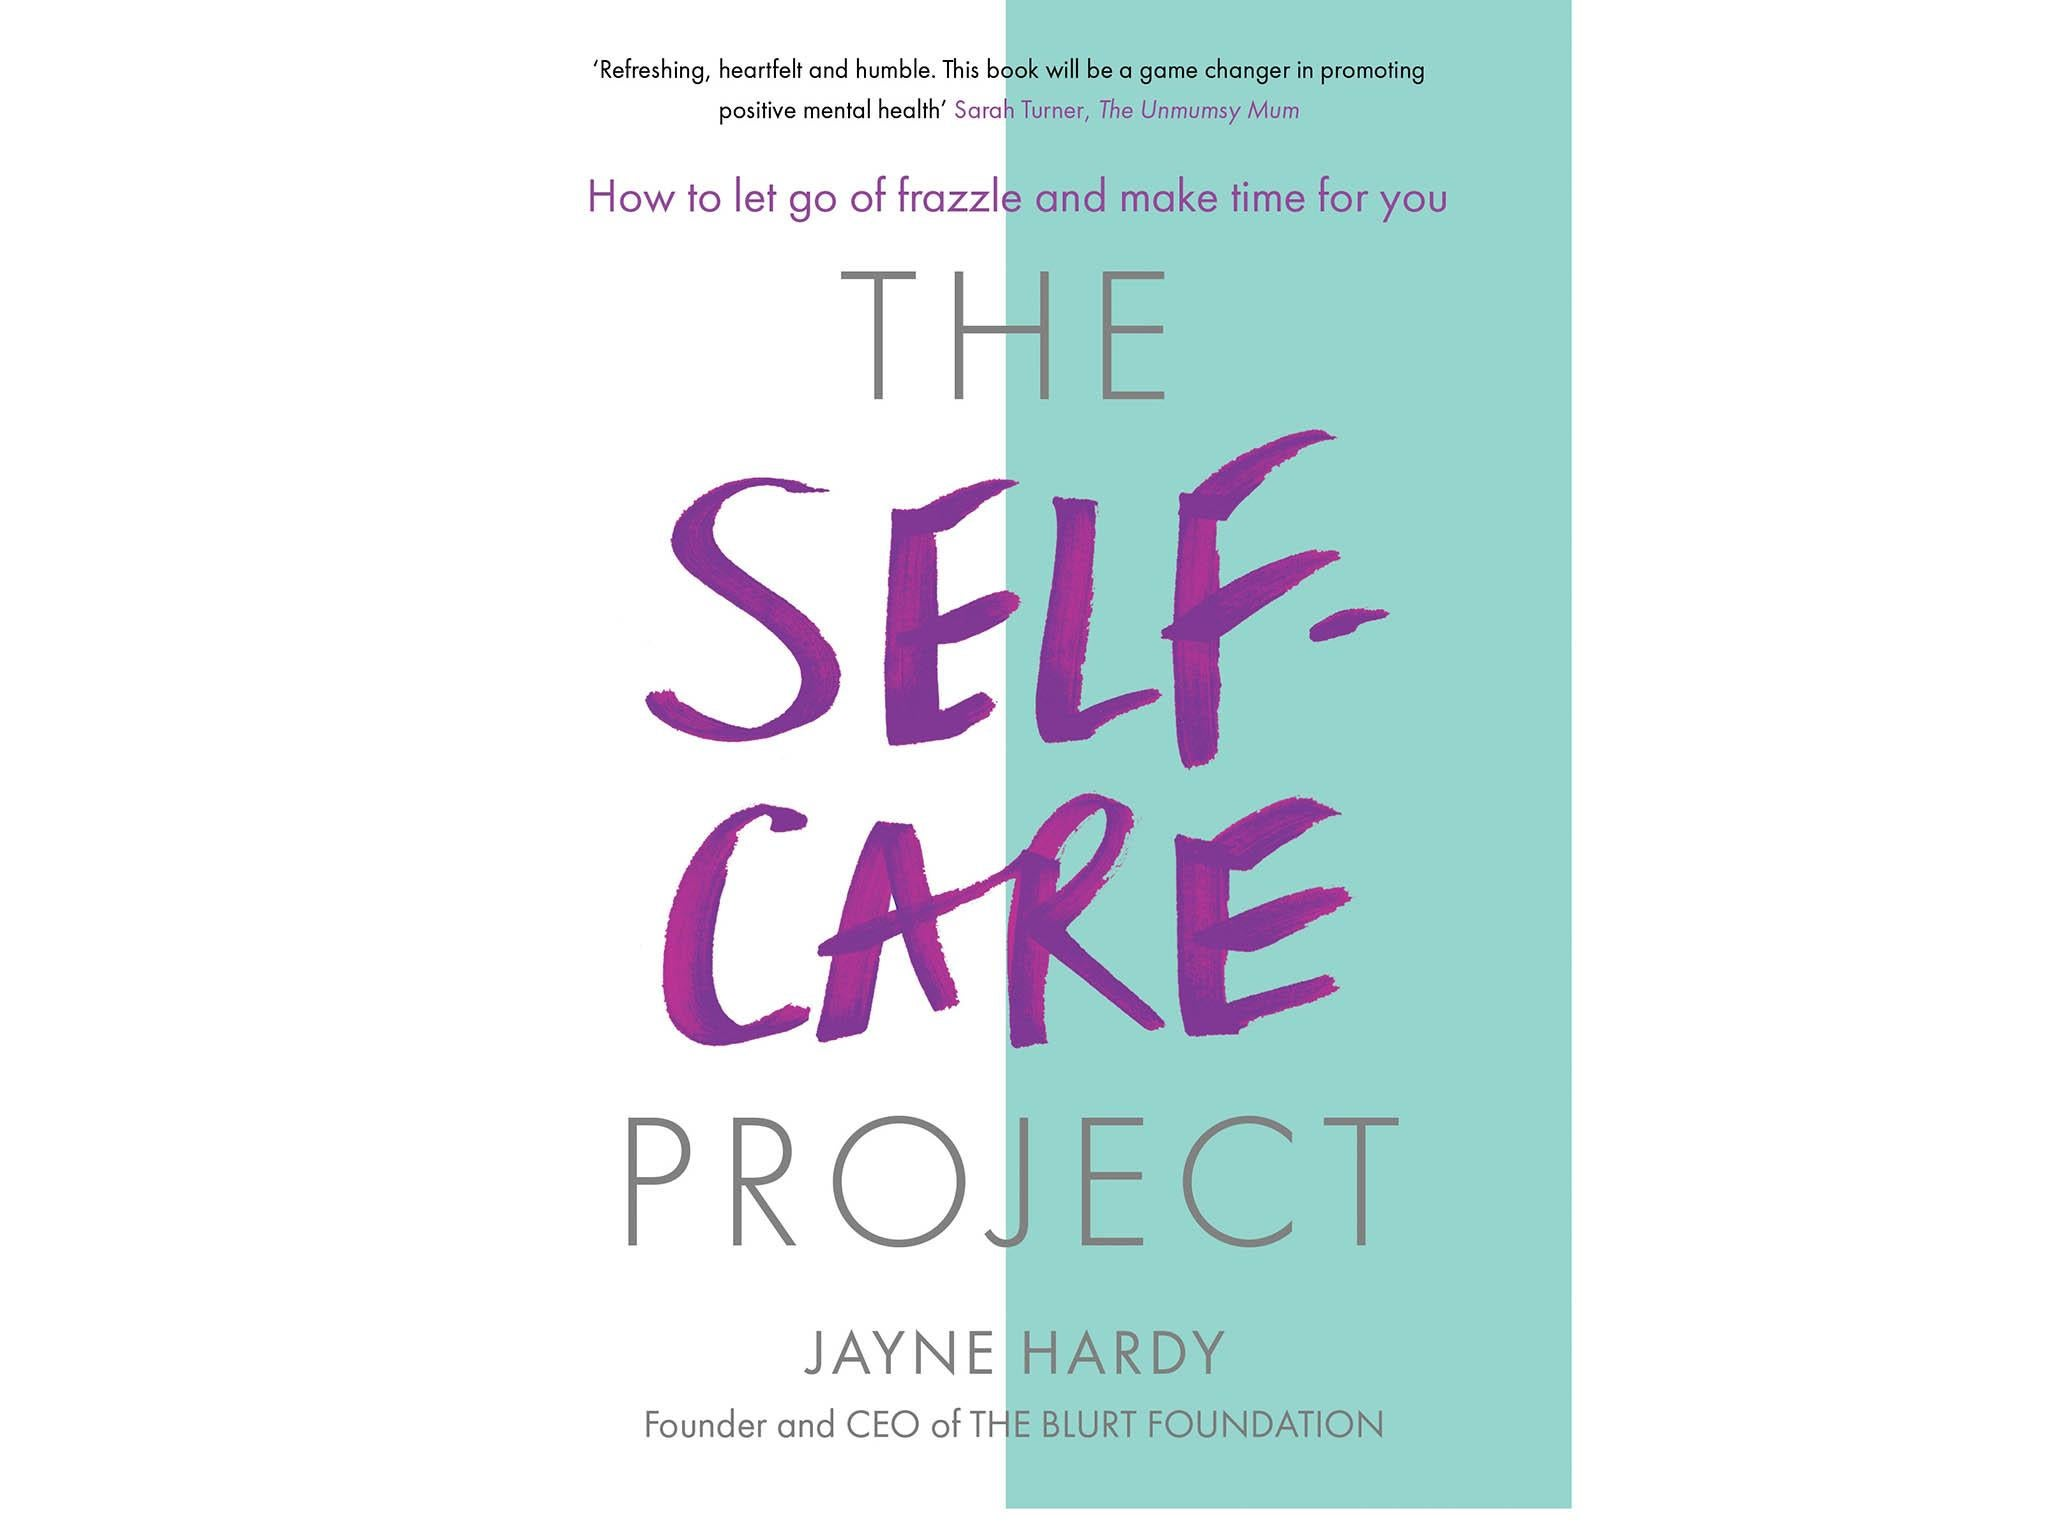 8 best self-care books | The Independent